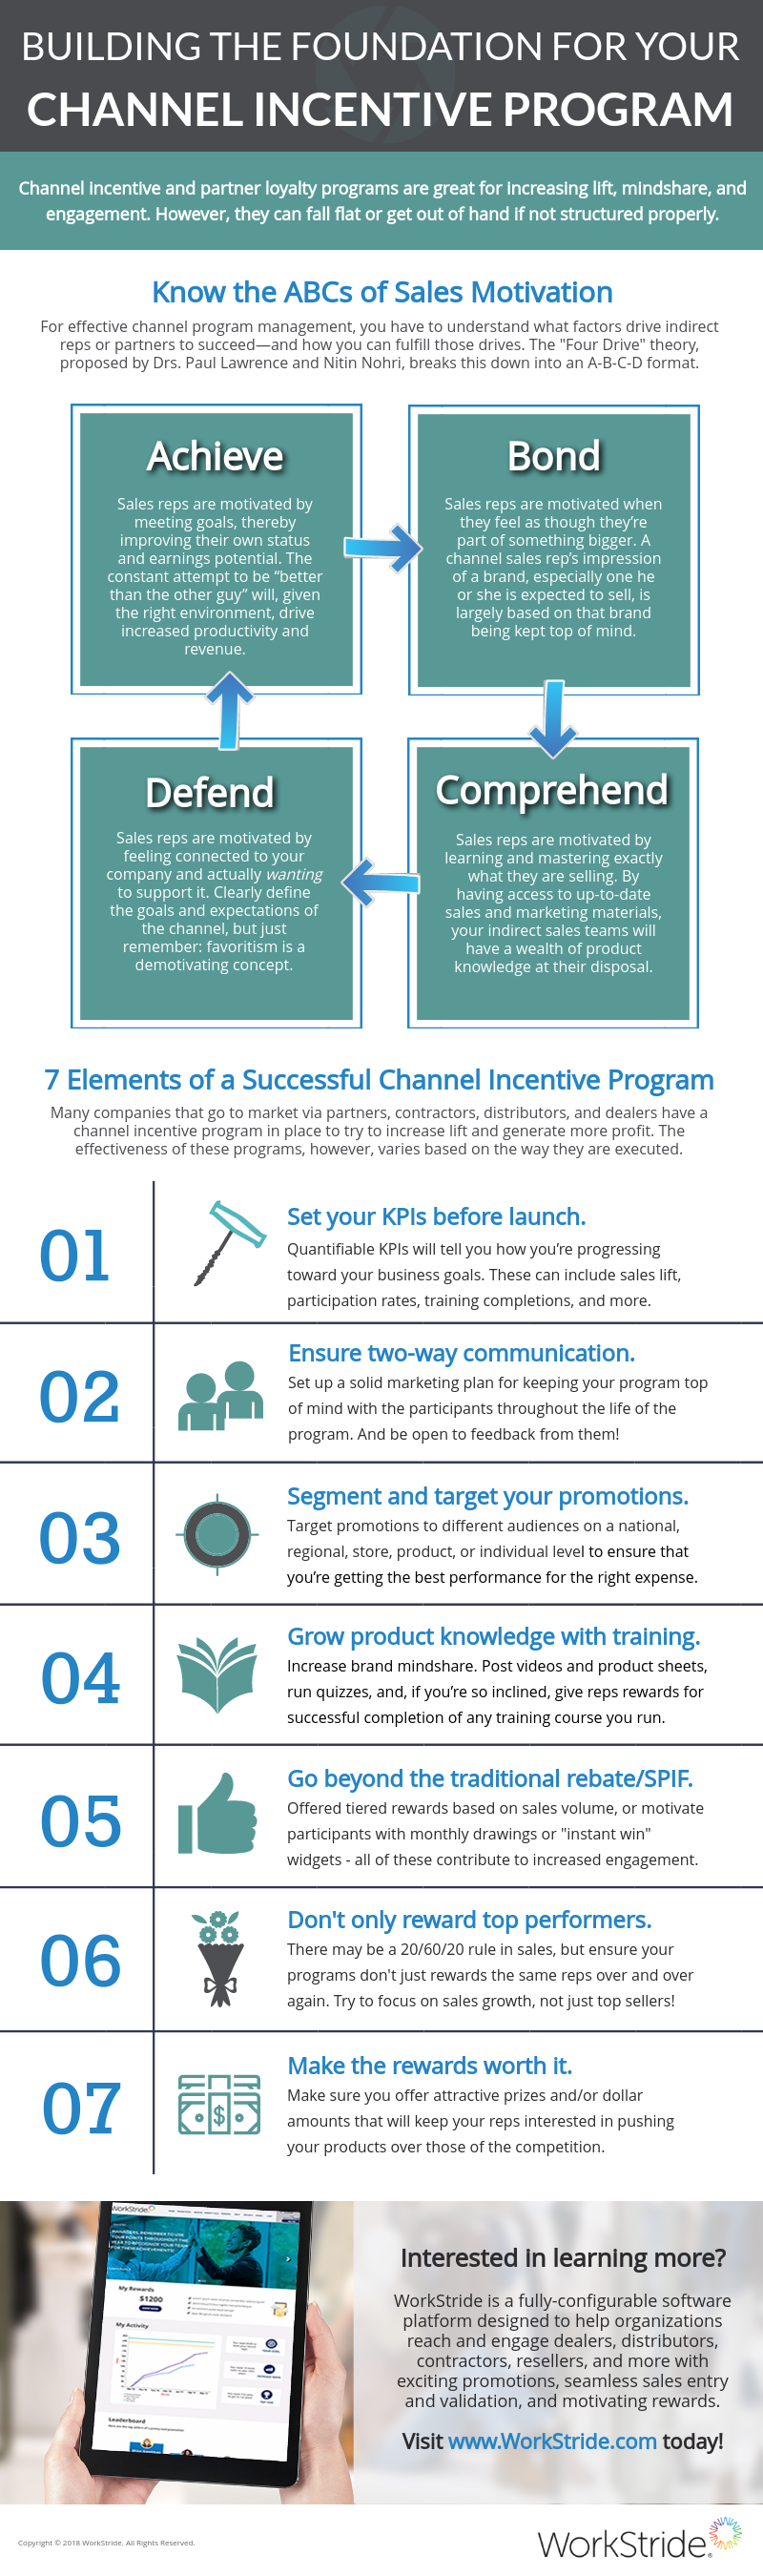 channel incentive program infographic